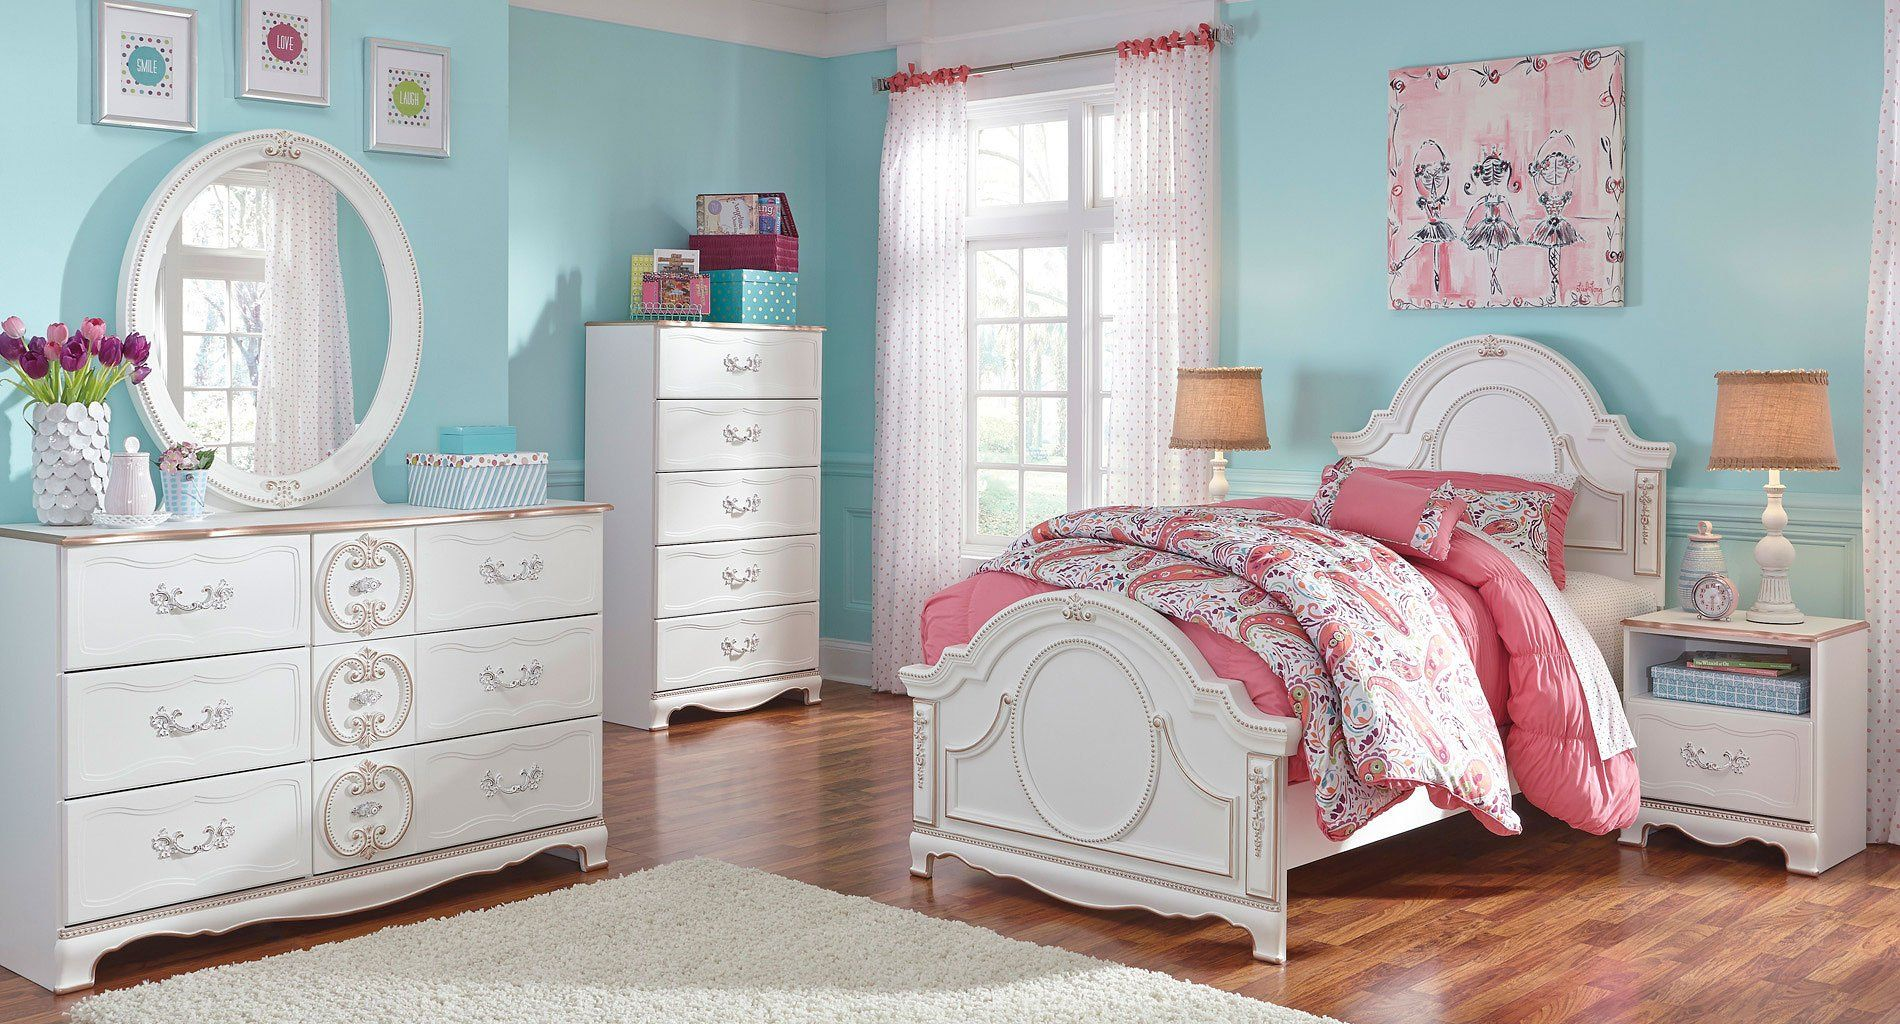 Korabella Panel Bedroom Set In 2020 Master Bedroom Set Bedroom Sets Kids Bedroom Sets